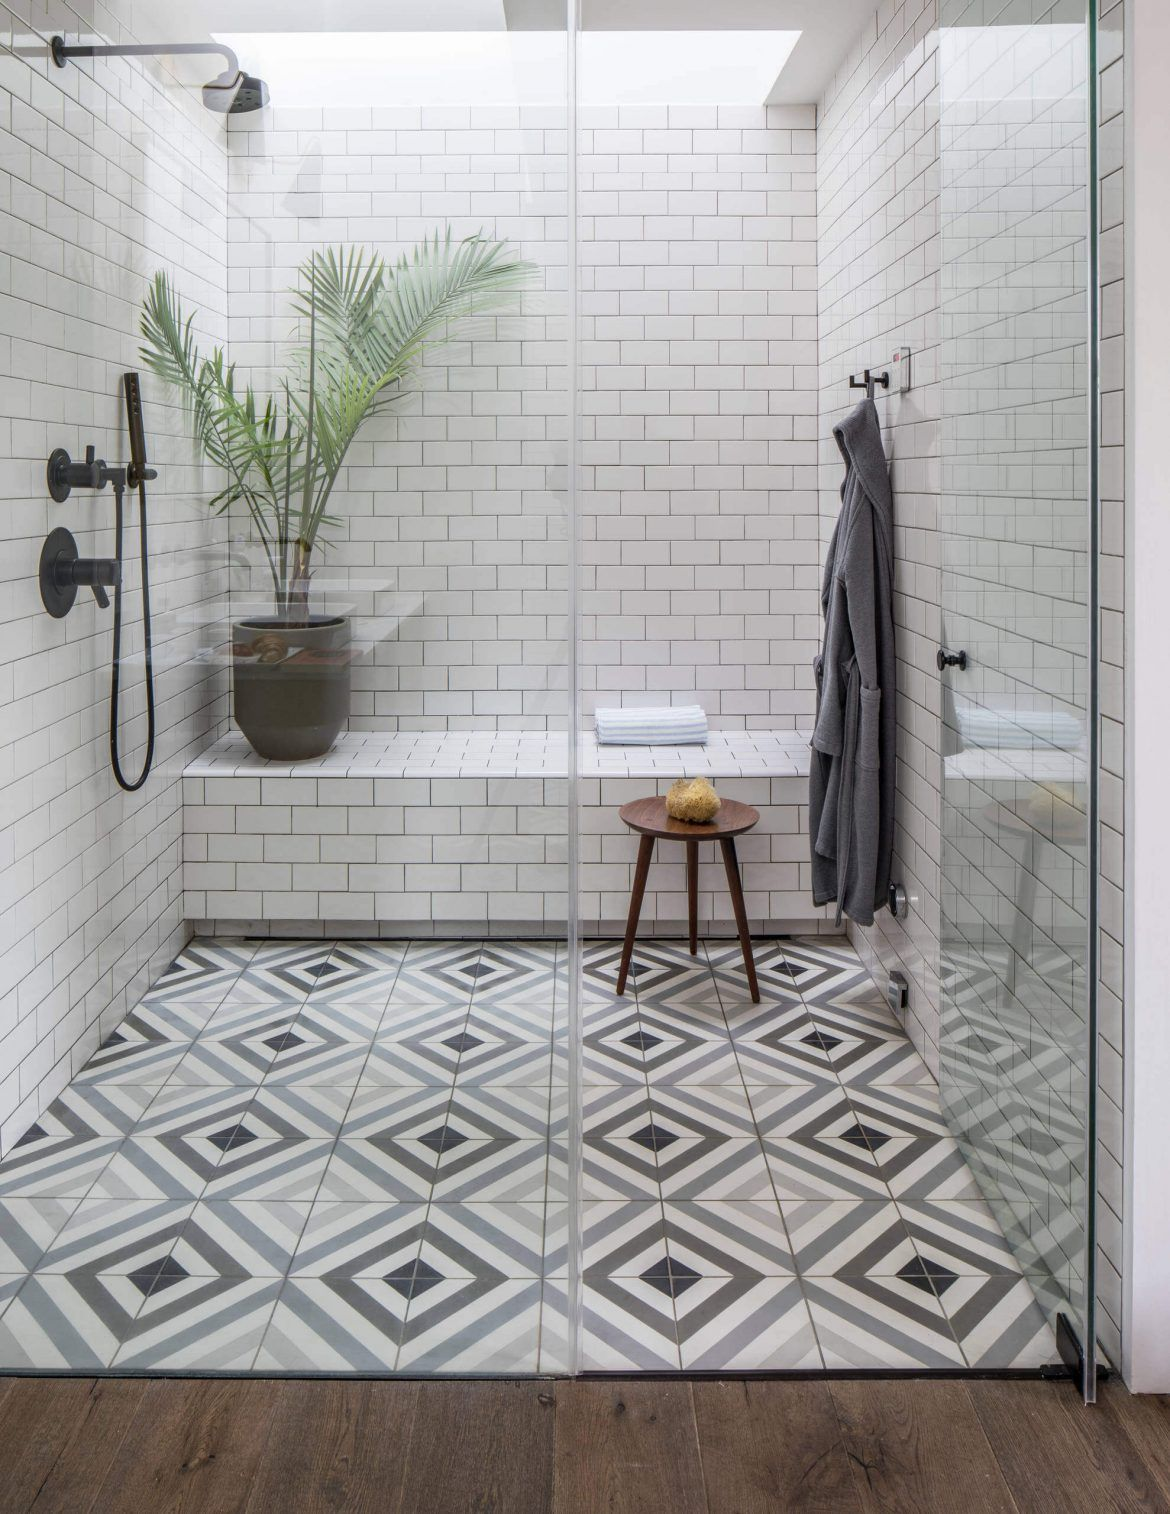 44 Modern Shower Tile Ideas And Designs 2020 Edition Bathroom Floor Tiles Bathroom Remodel Tile Shower Tile